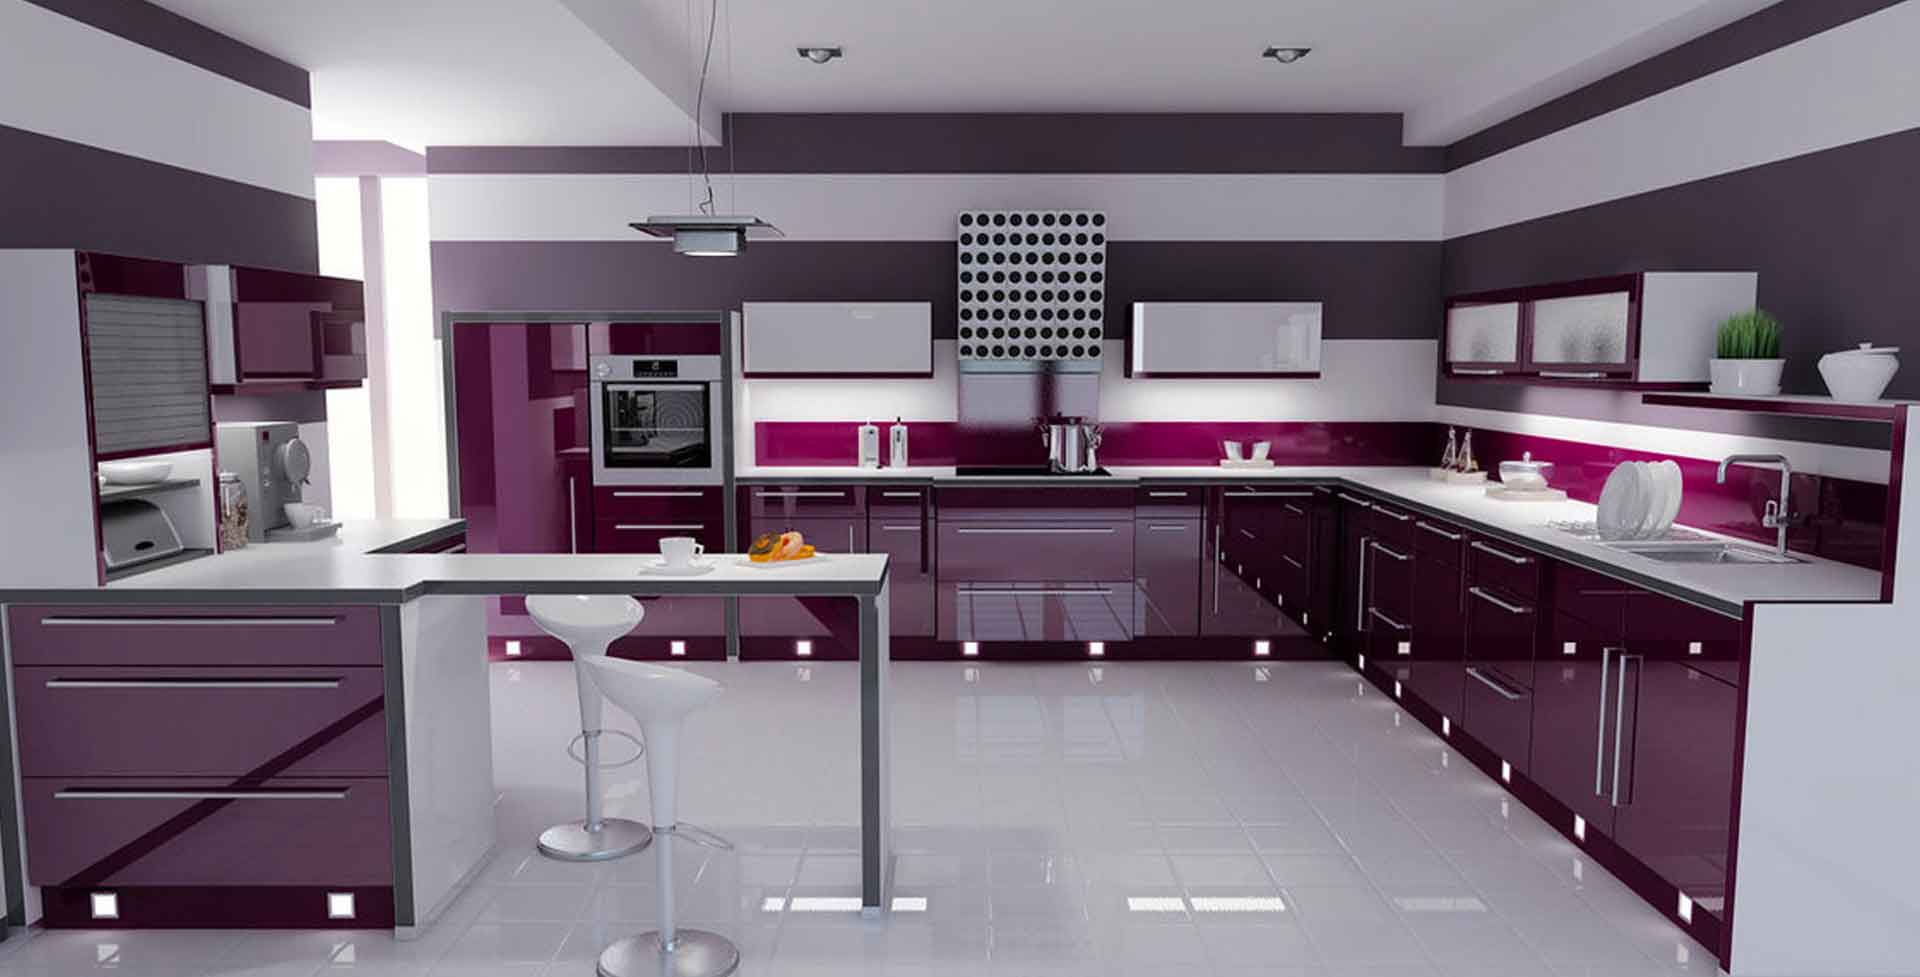 How To Choose The Right Kitchen Spendlove Kitchens Greystones